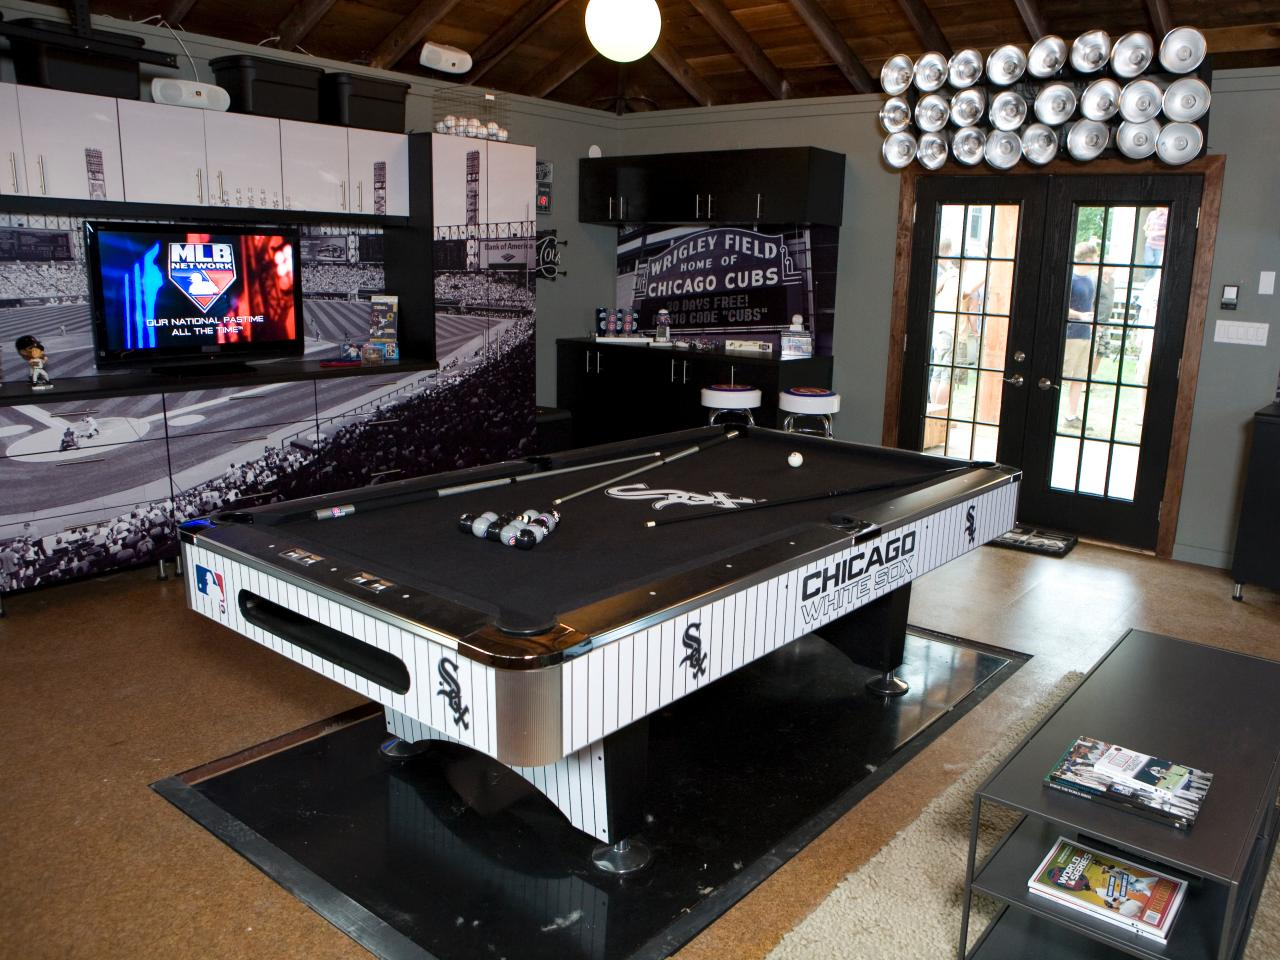 Man Cave The Show : The ultimate major league baseball man cave caves diy